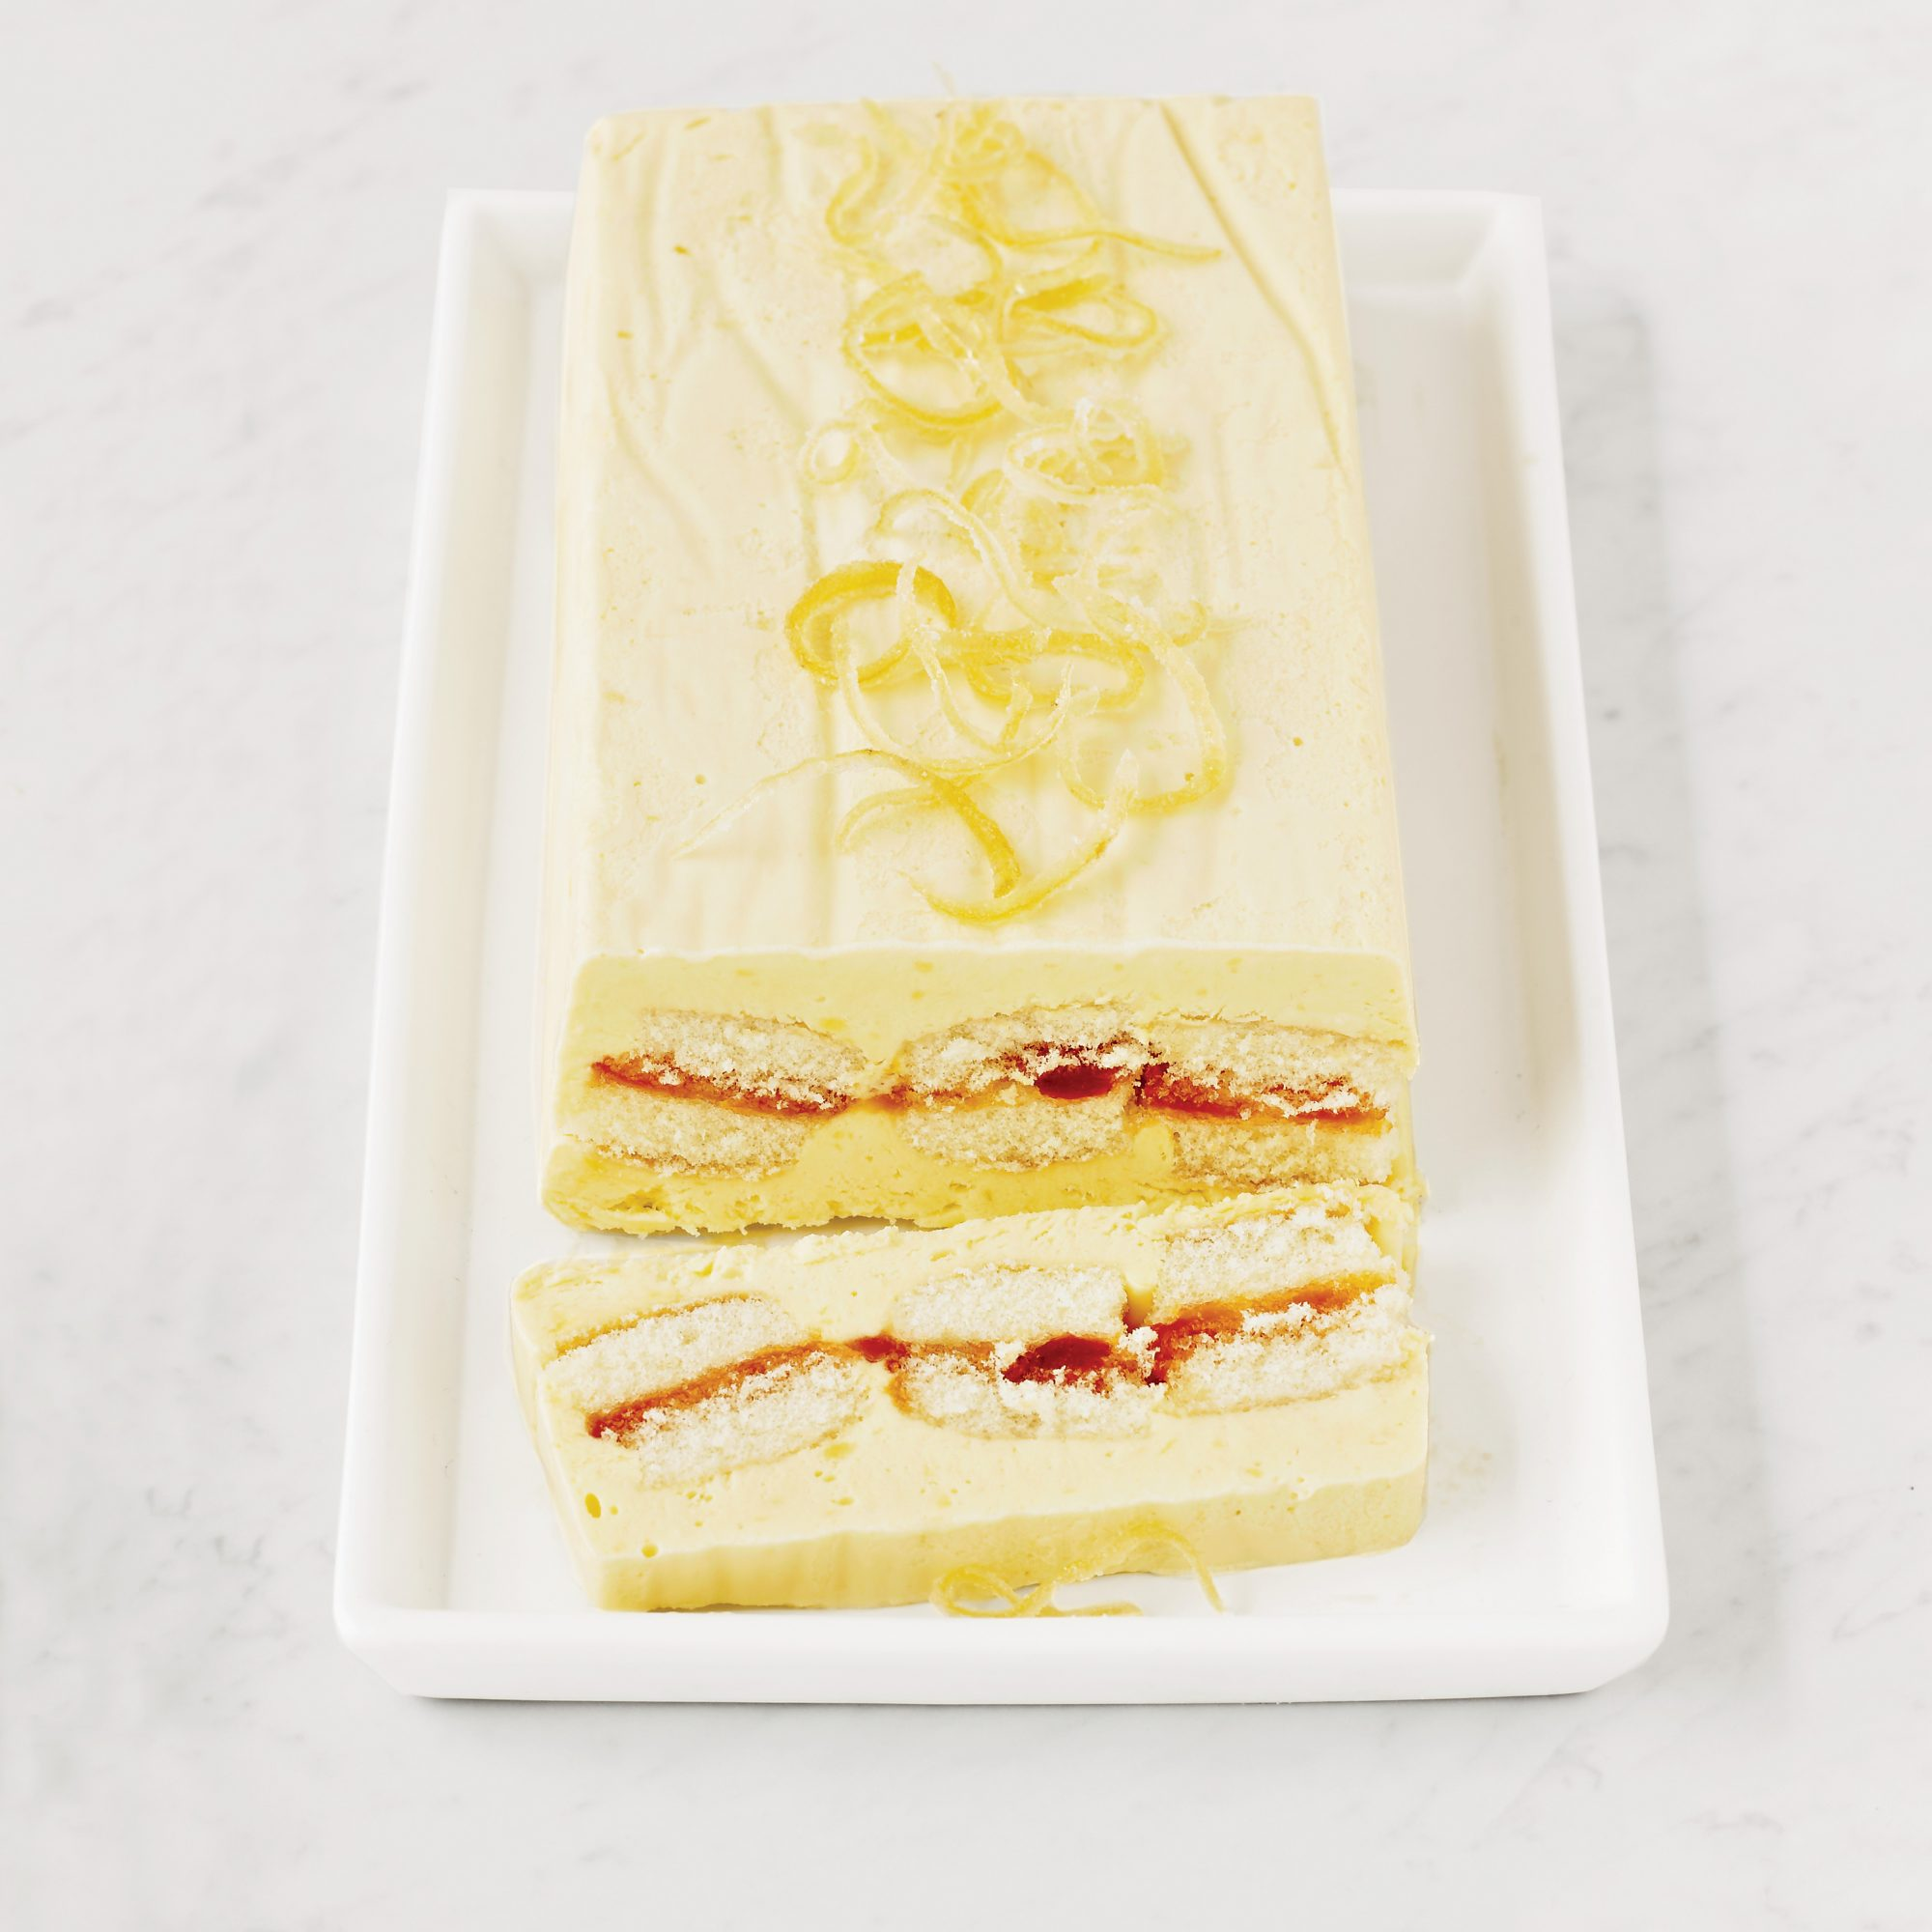 Lemon-Honey Semifreddo